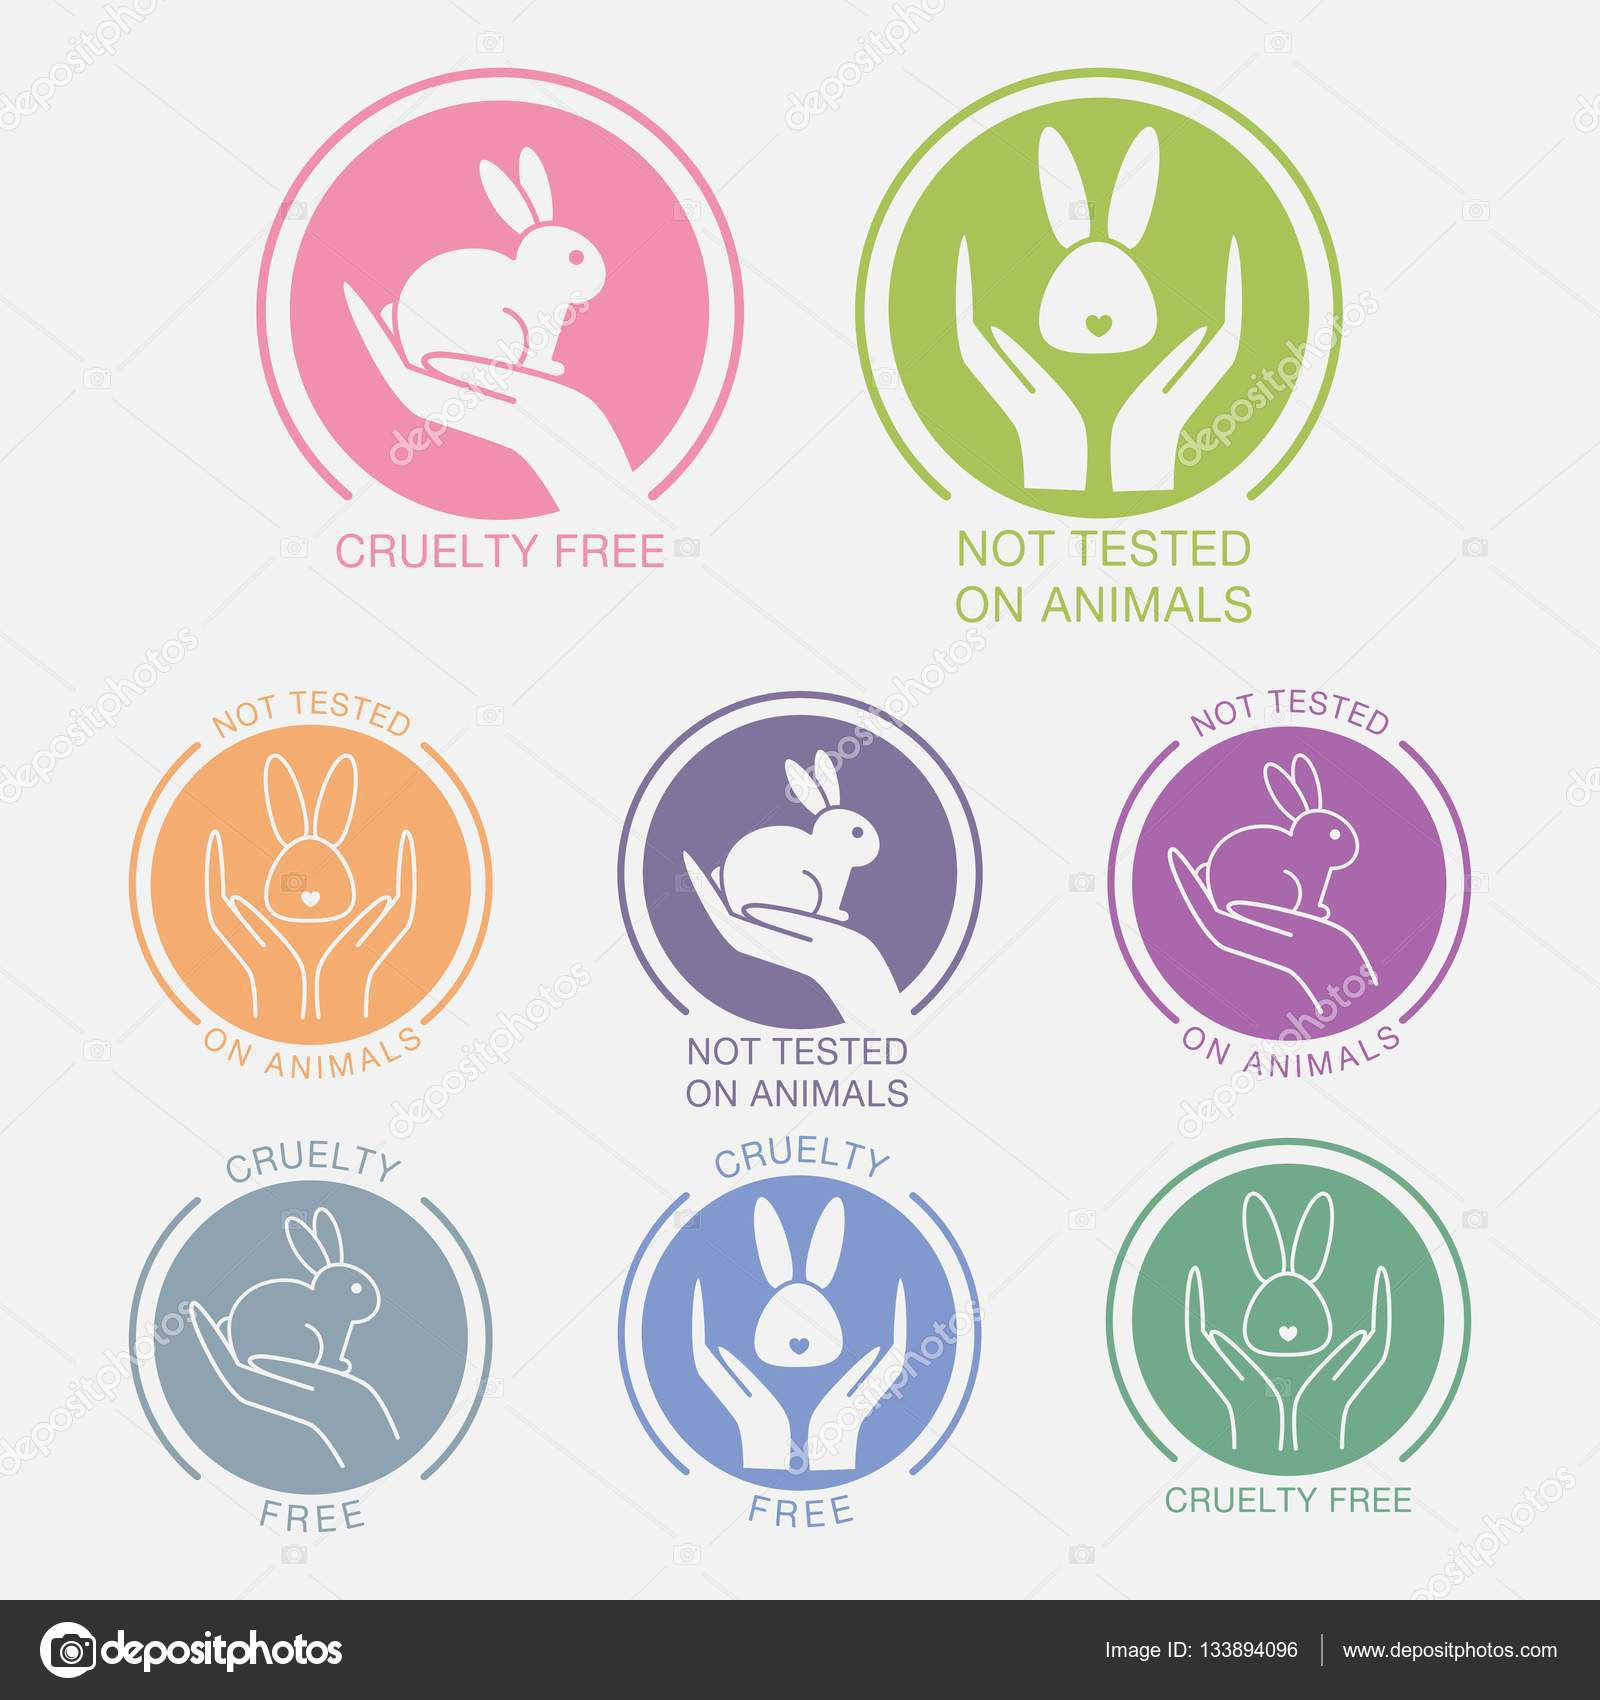 No animals testing icon animal cruelty free icon stock vector no animals testing icon design not tested sign animal cruelty free icon product not tested on animals symbol can be used as sticker logo stamp icon biocorpaavc Gallery